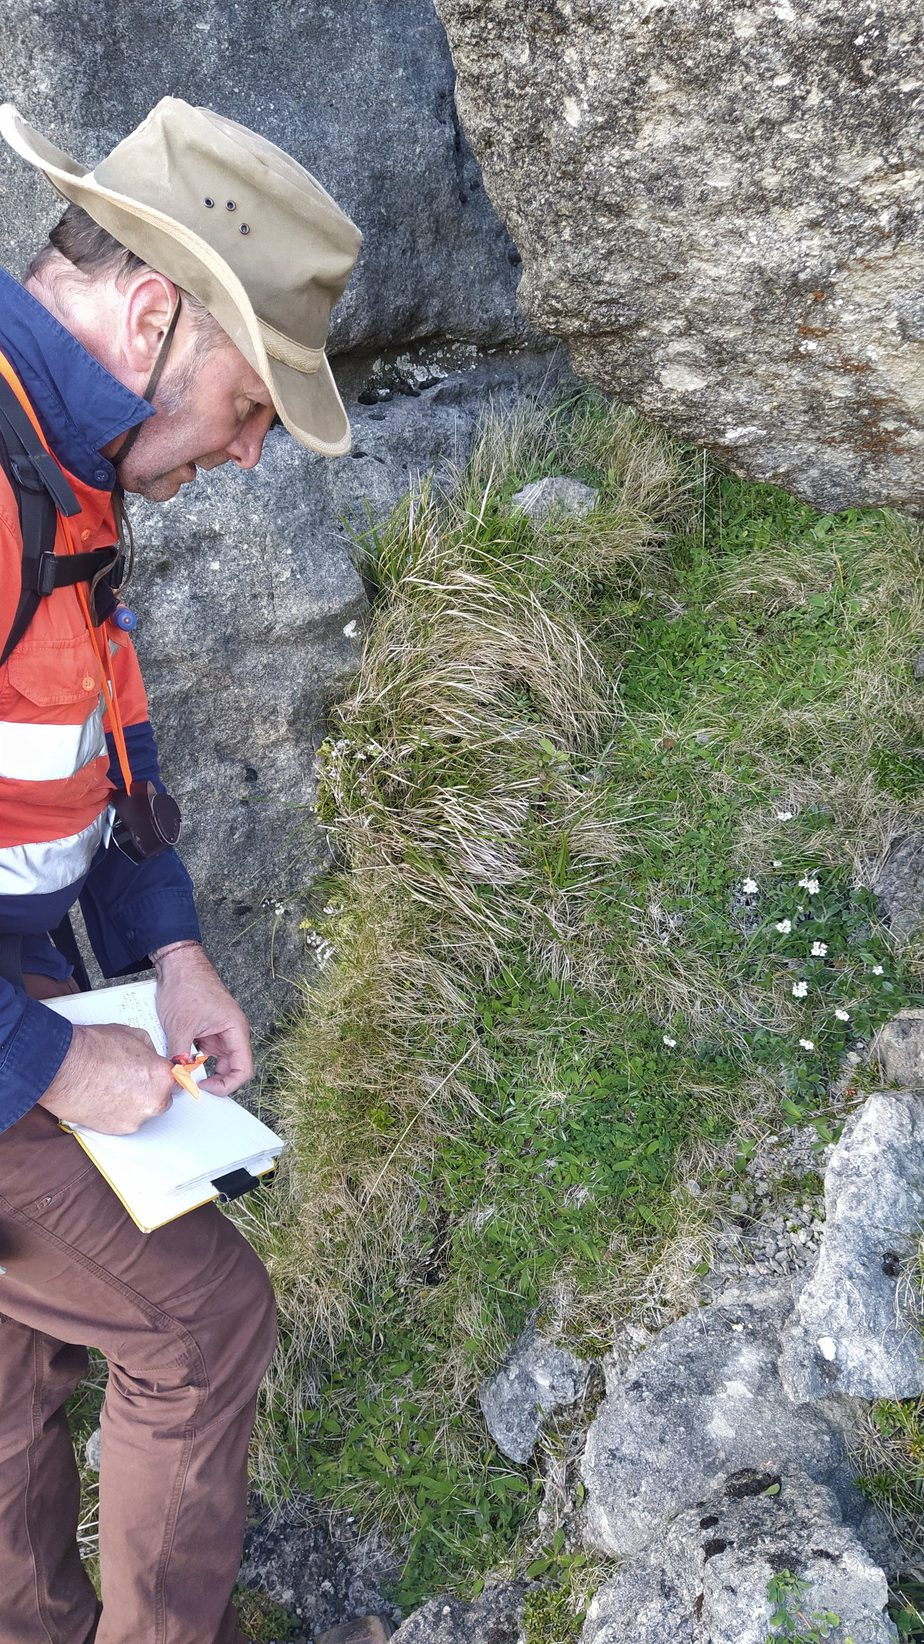 Mike Thorsen counting Myosotis saxosa plants SP110027 in the Maungaharuru Range, which is the stronghold for this threatened species. Dec 2020. Photo by Heidi Meudt @ Te Papa.